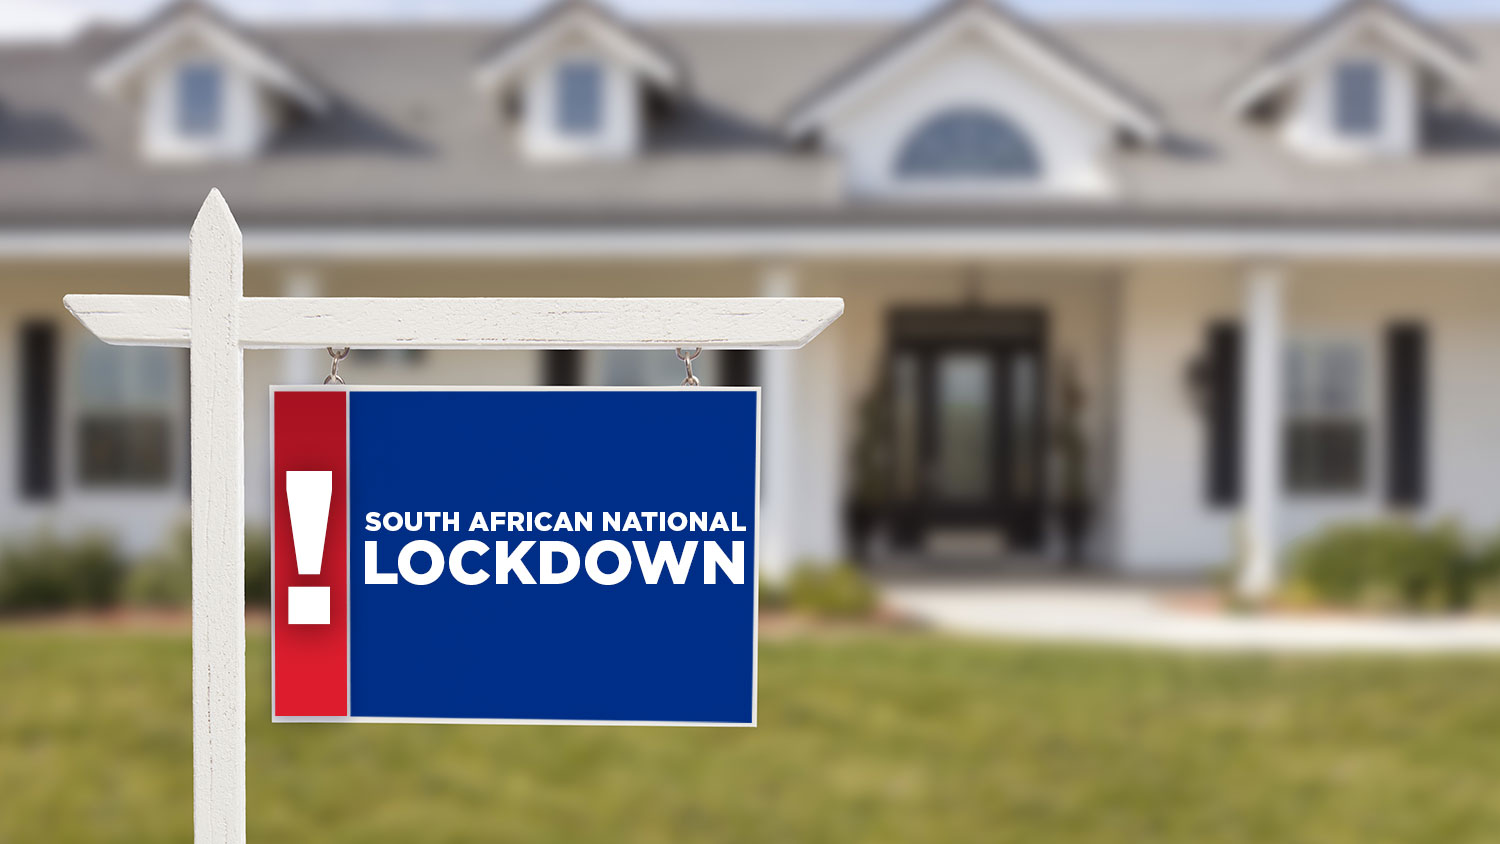 HOW TO SELL YOUR HOME DURING THE LOCKDOWN